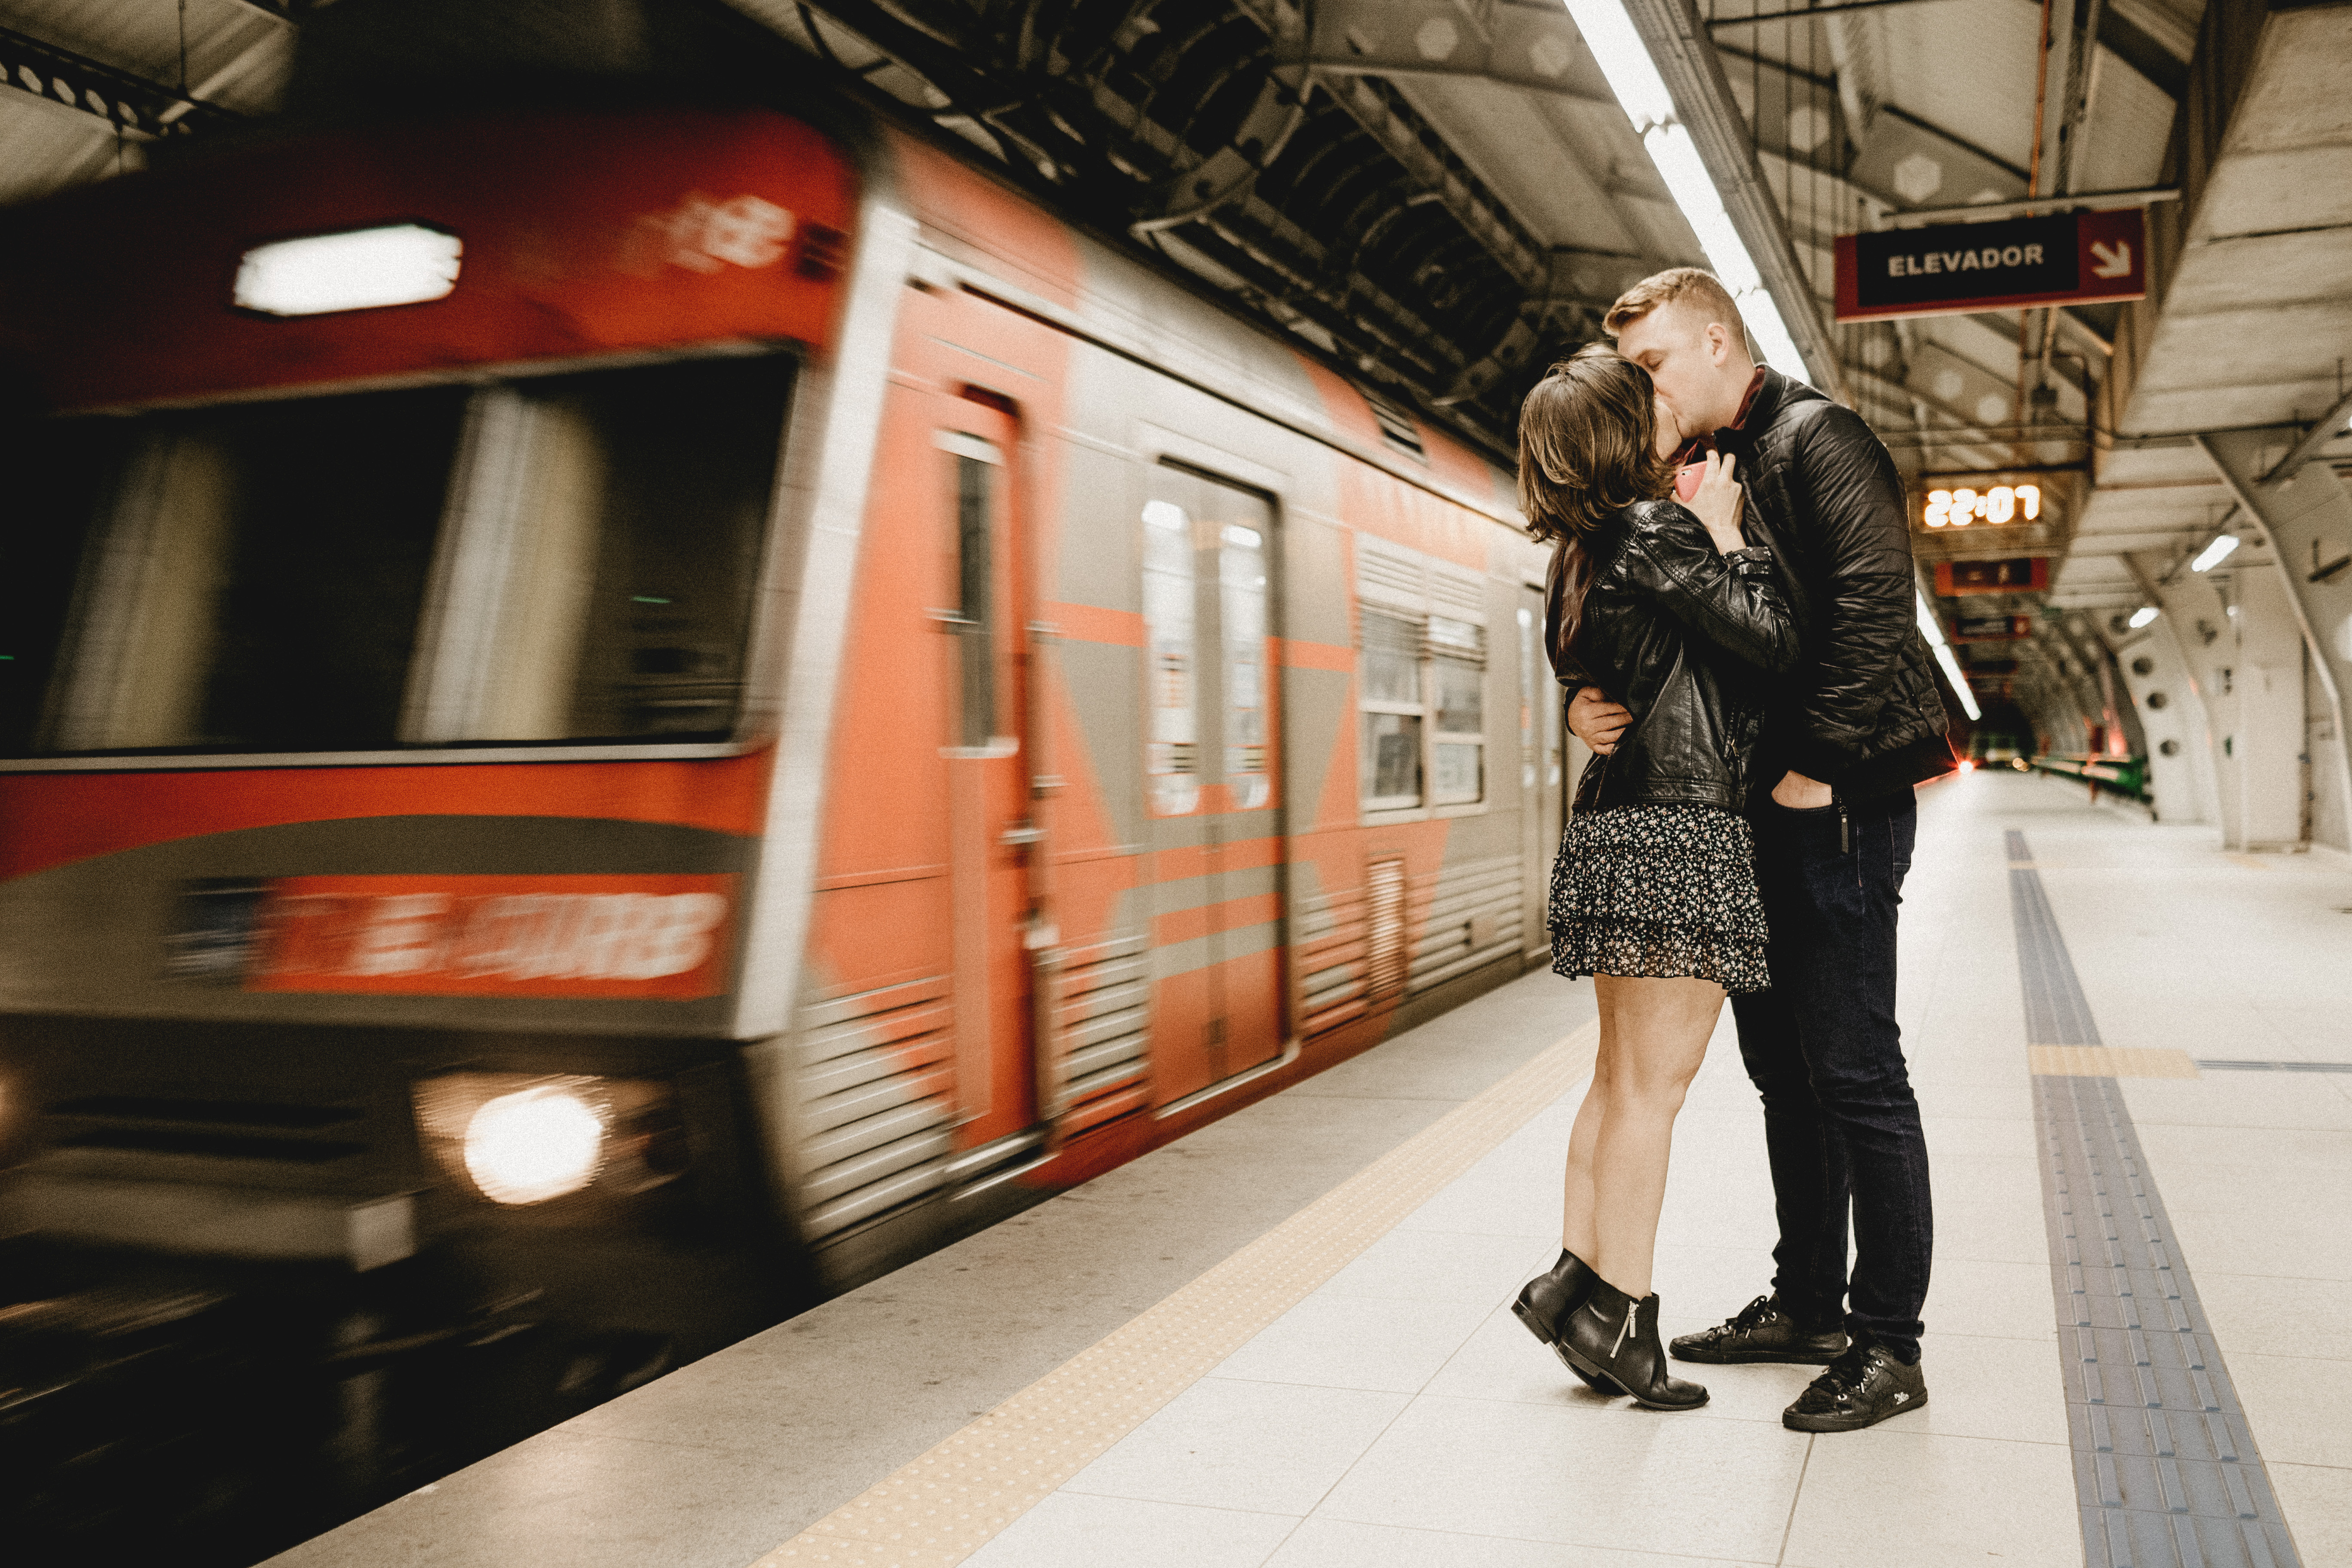 Kissing Couple Beside Running Train in Subway